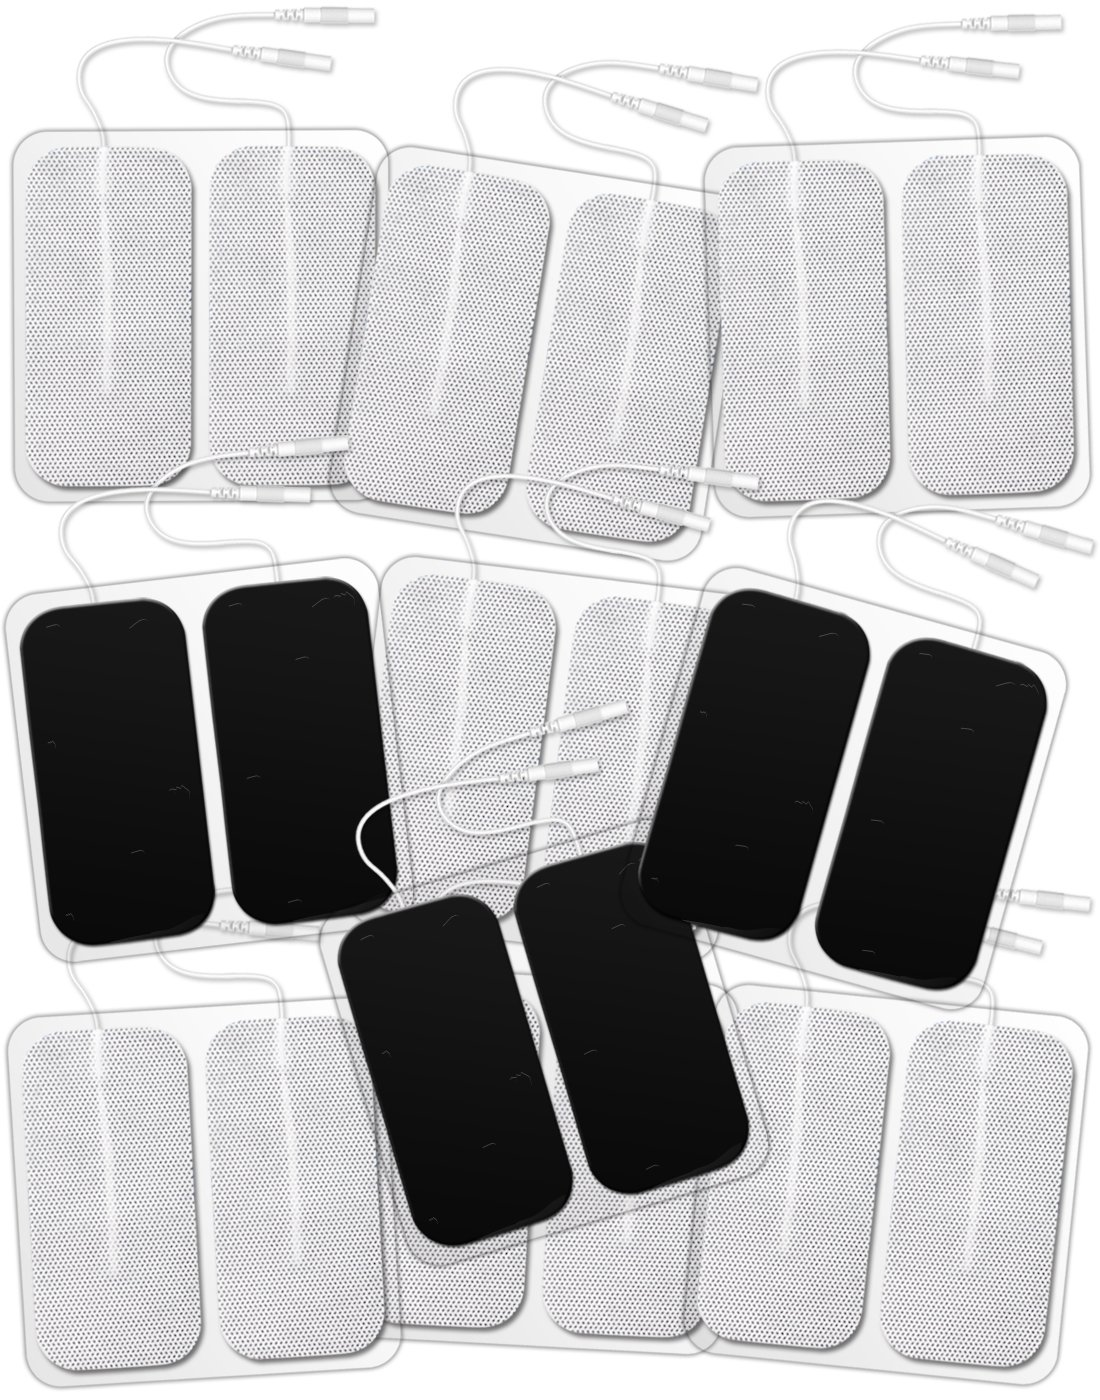 DONECO TENS Unit Electrodes 2''x4'' Rectangular 20-Pack Electrode Pads for TENS Therapy - Self-Adhering, Reusable and Premium Quality